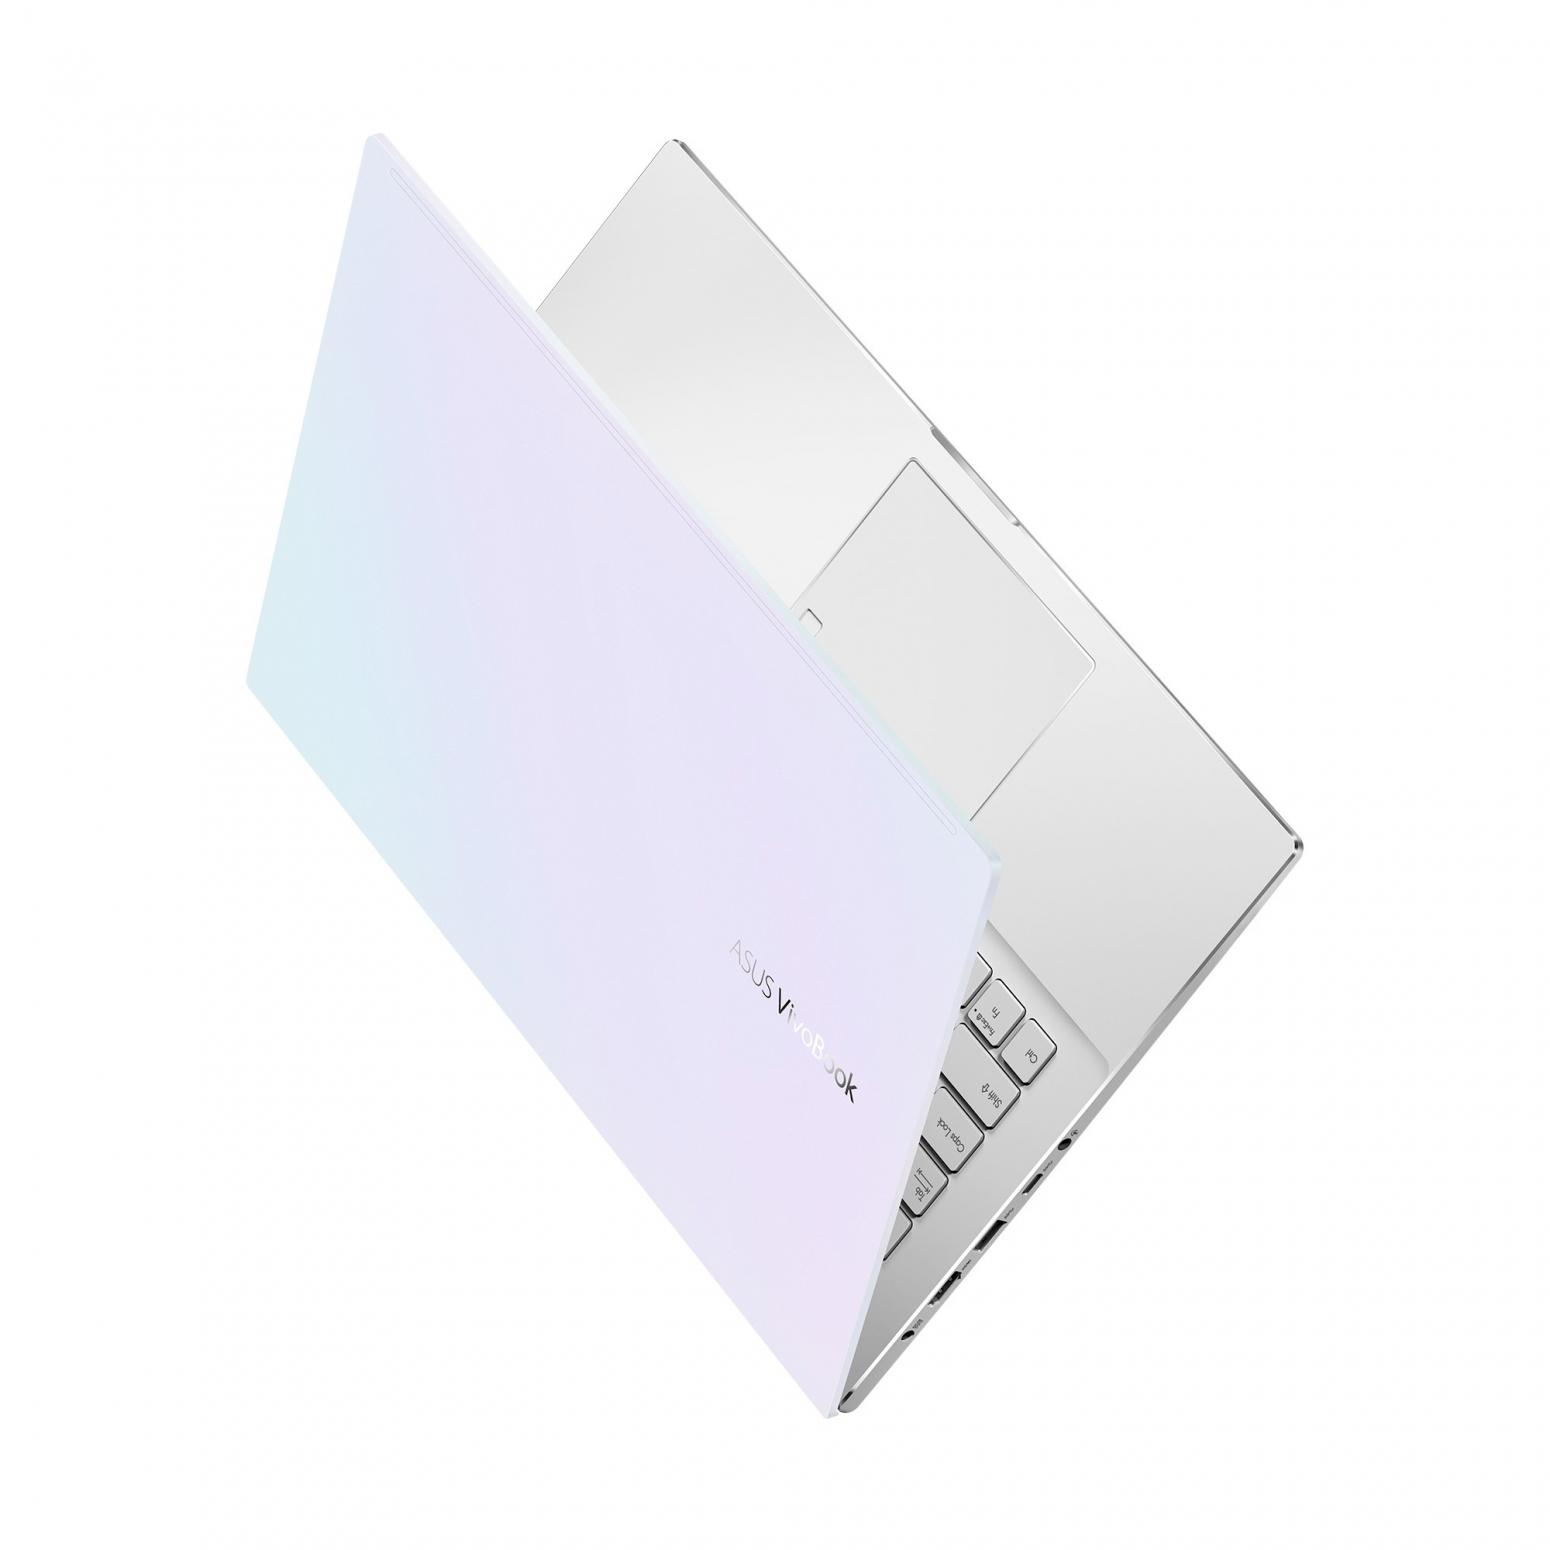 Ordinateur portable Asus Vivobook S533IA-BQ148T Dreamy White - Ryzen 5 Hexa Core - photo 7